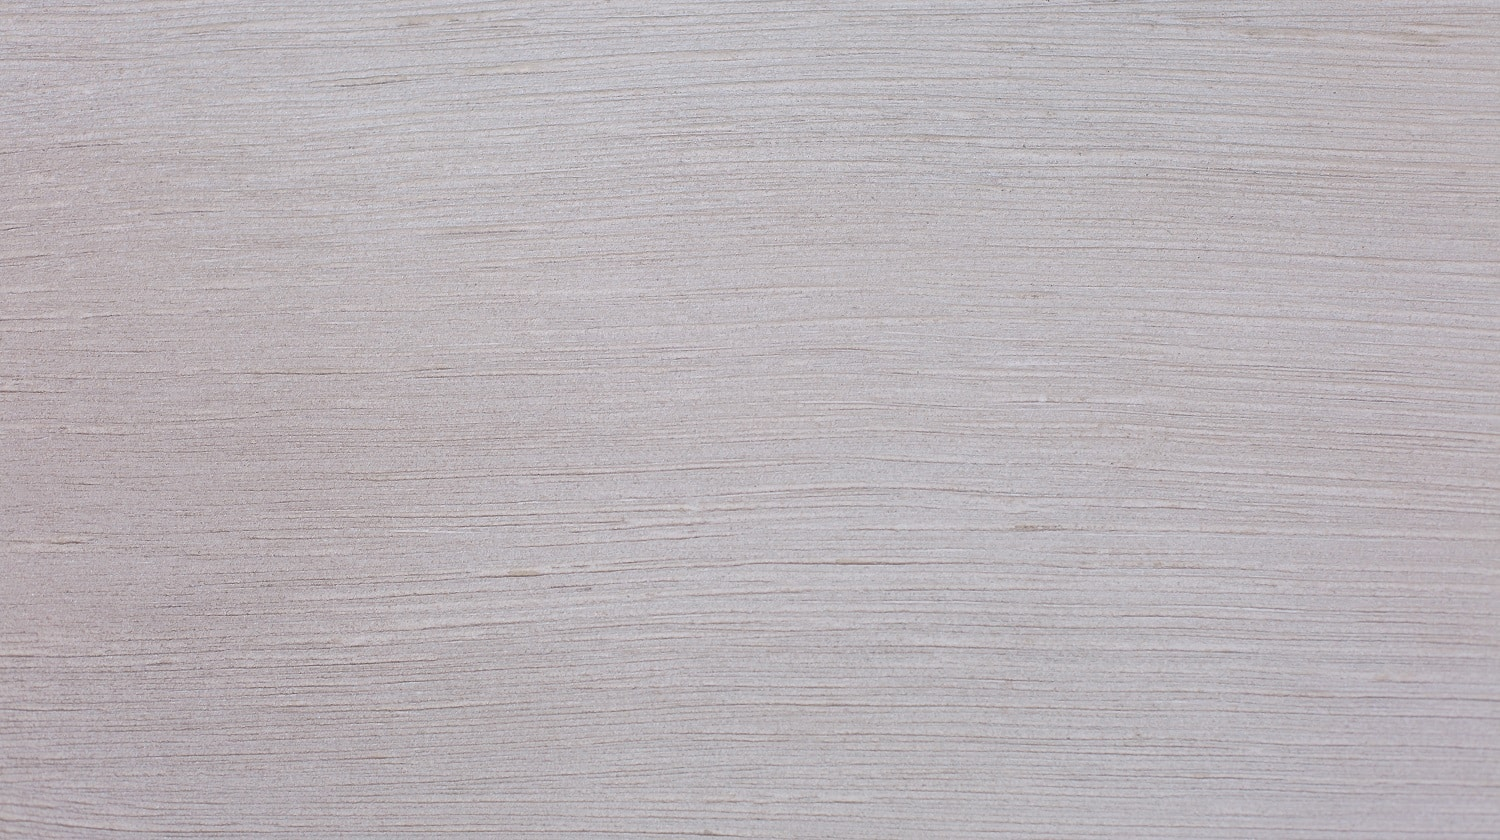 Texture putty on wall. Rough grunge wall background. Wall plastering